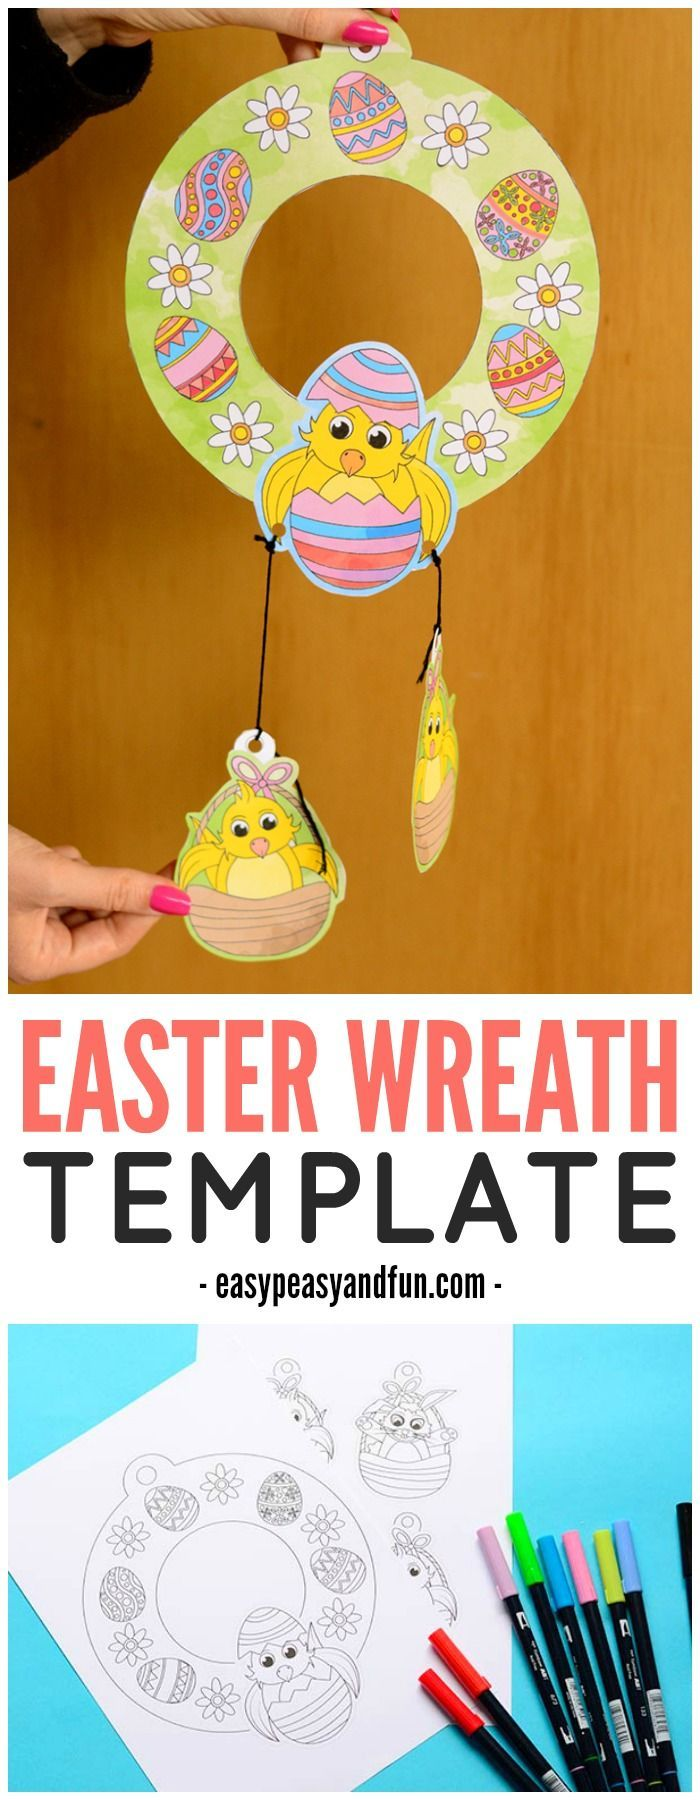 printable easter wreaths 17 best images about crafts on 2763